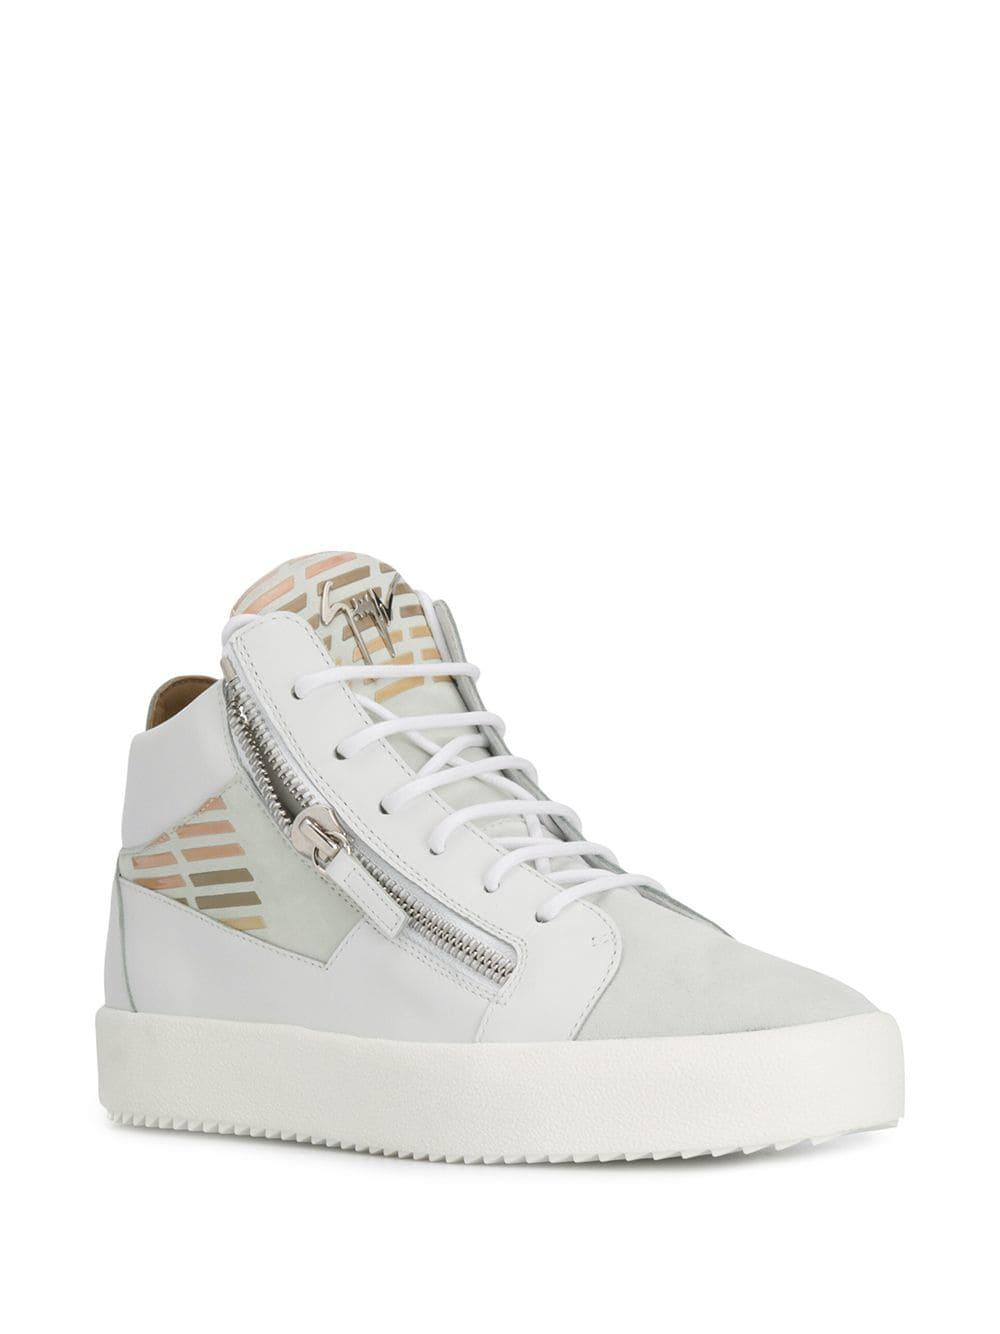 4a29f86128c08 Lyst - Giuseppe Zanotti Kriss Sneakers in White for Men